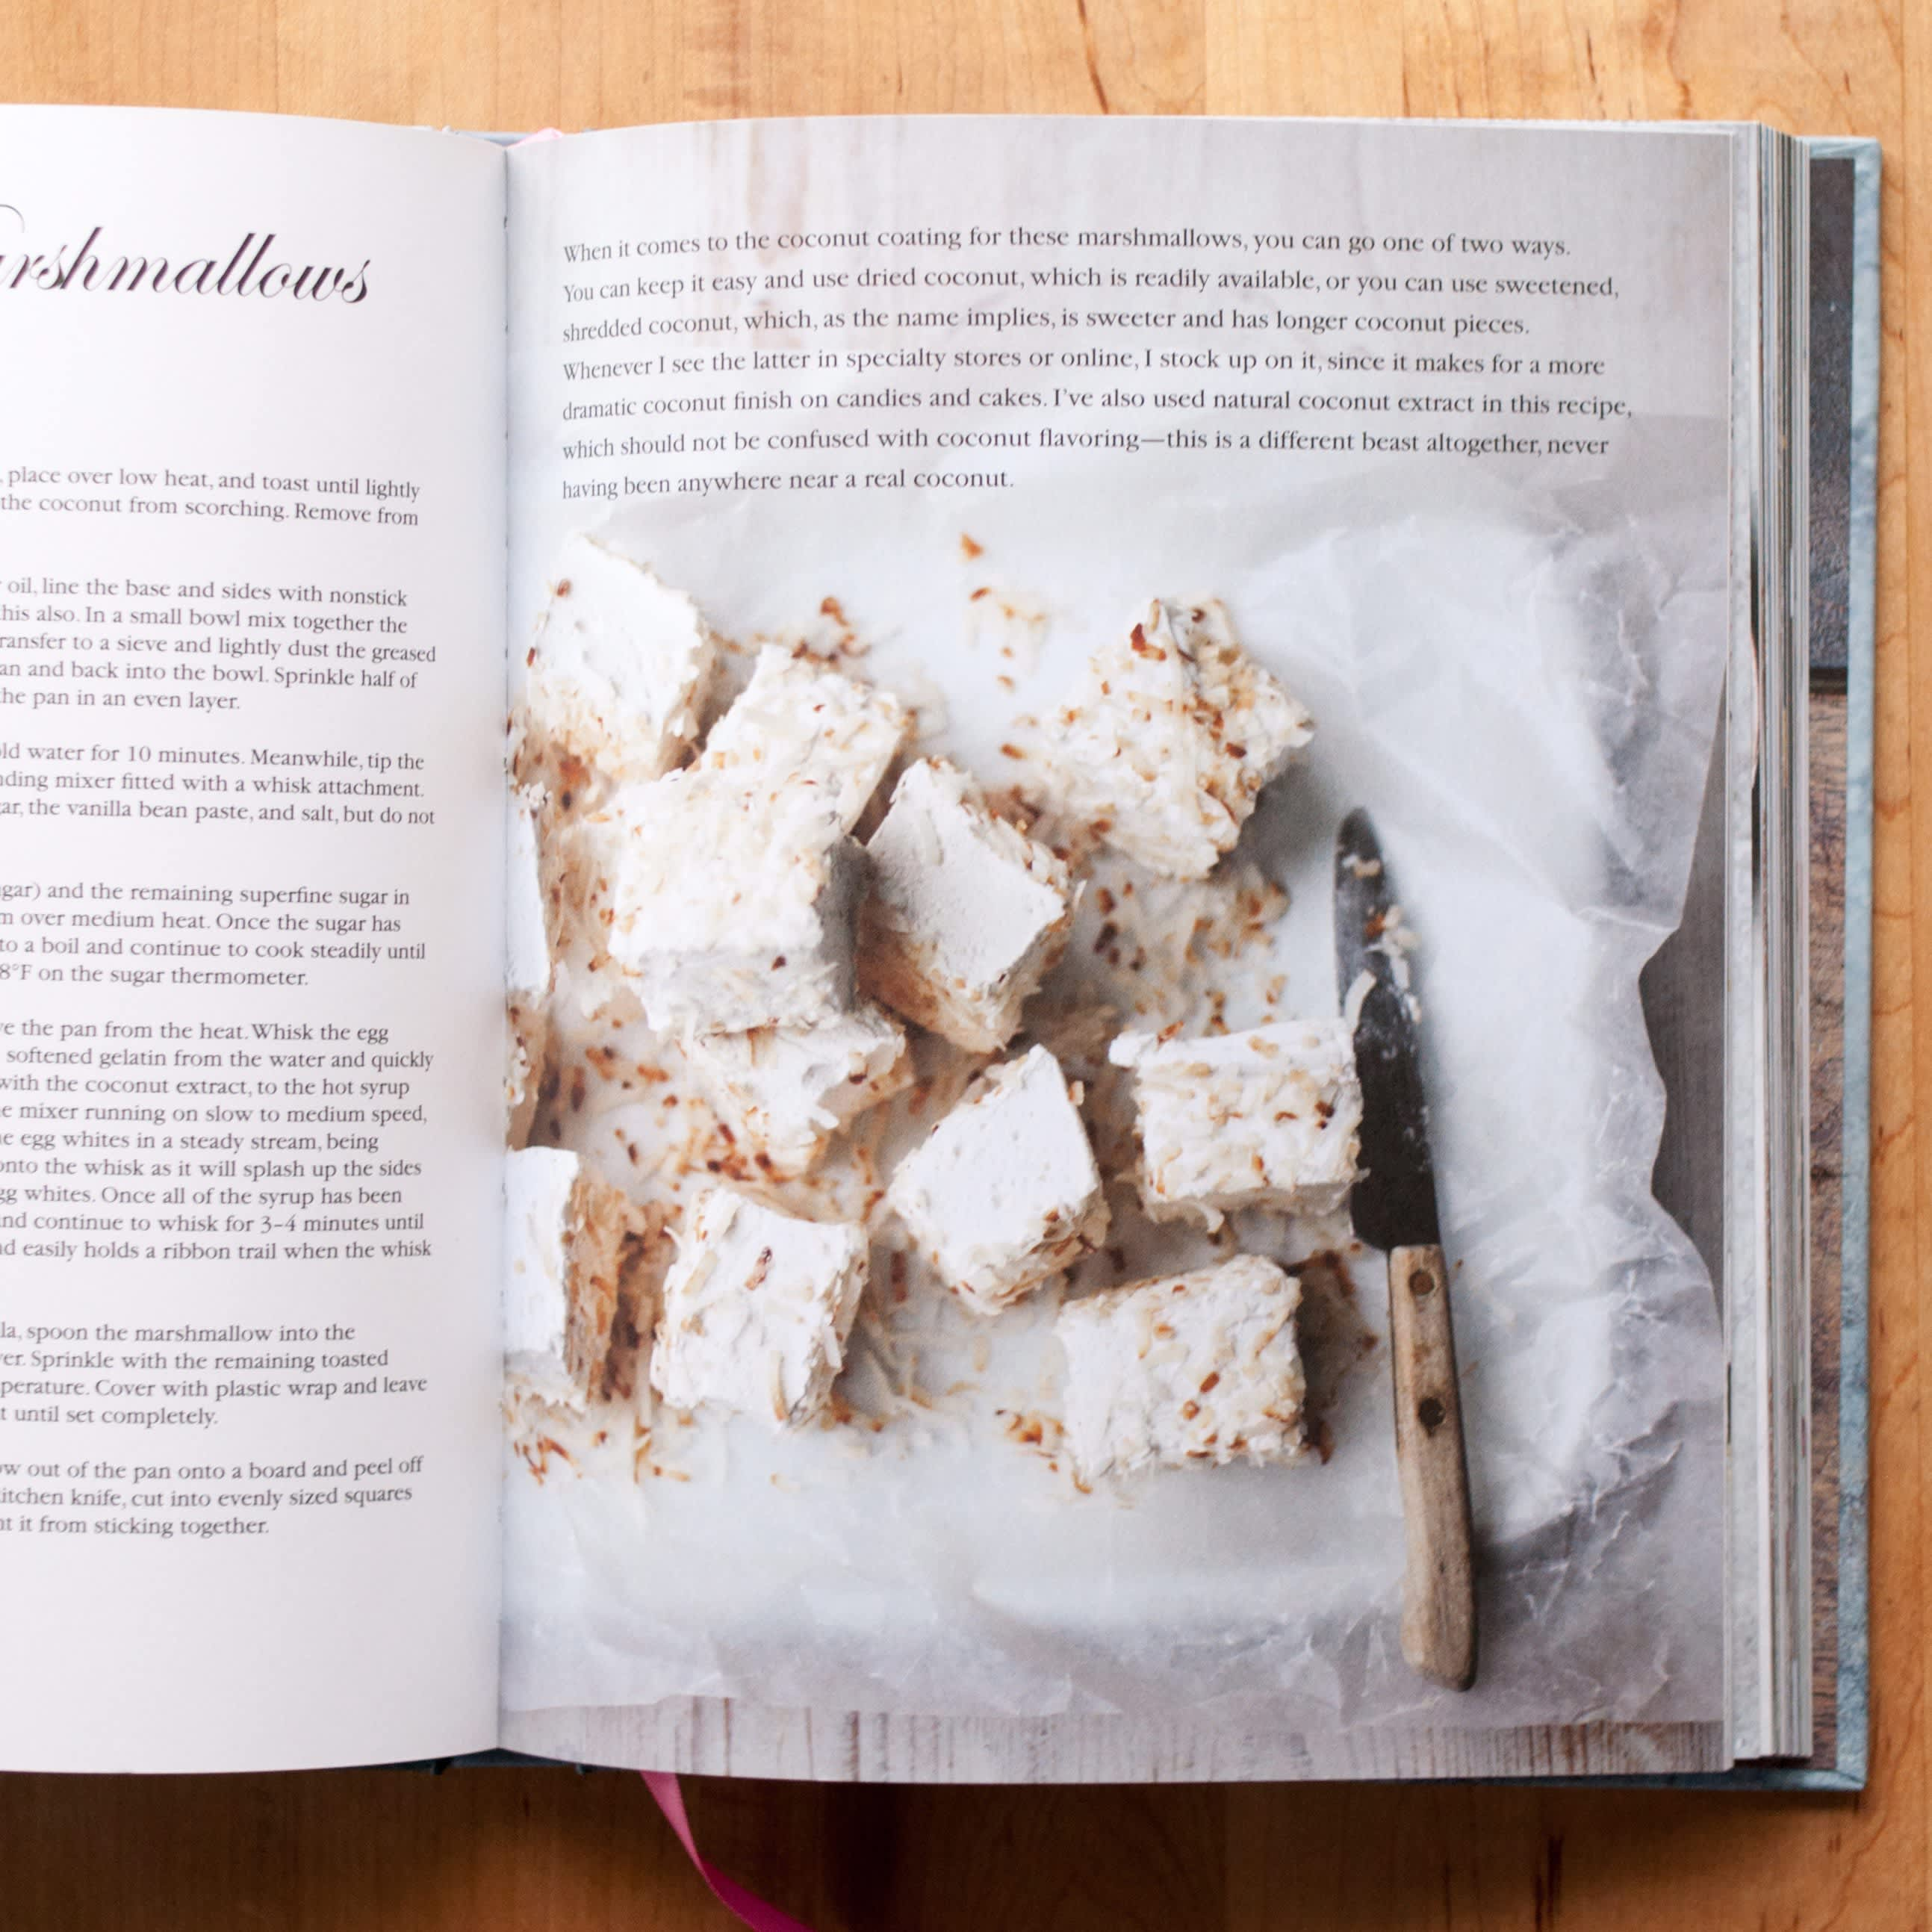 Get Ready to Channel Your Inner Willy Wonka with This Cookbook: gallery image 3